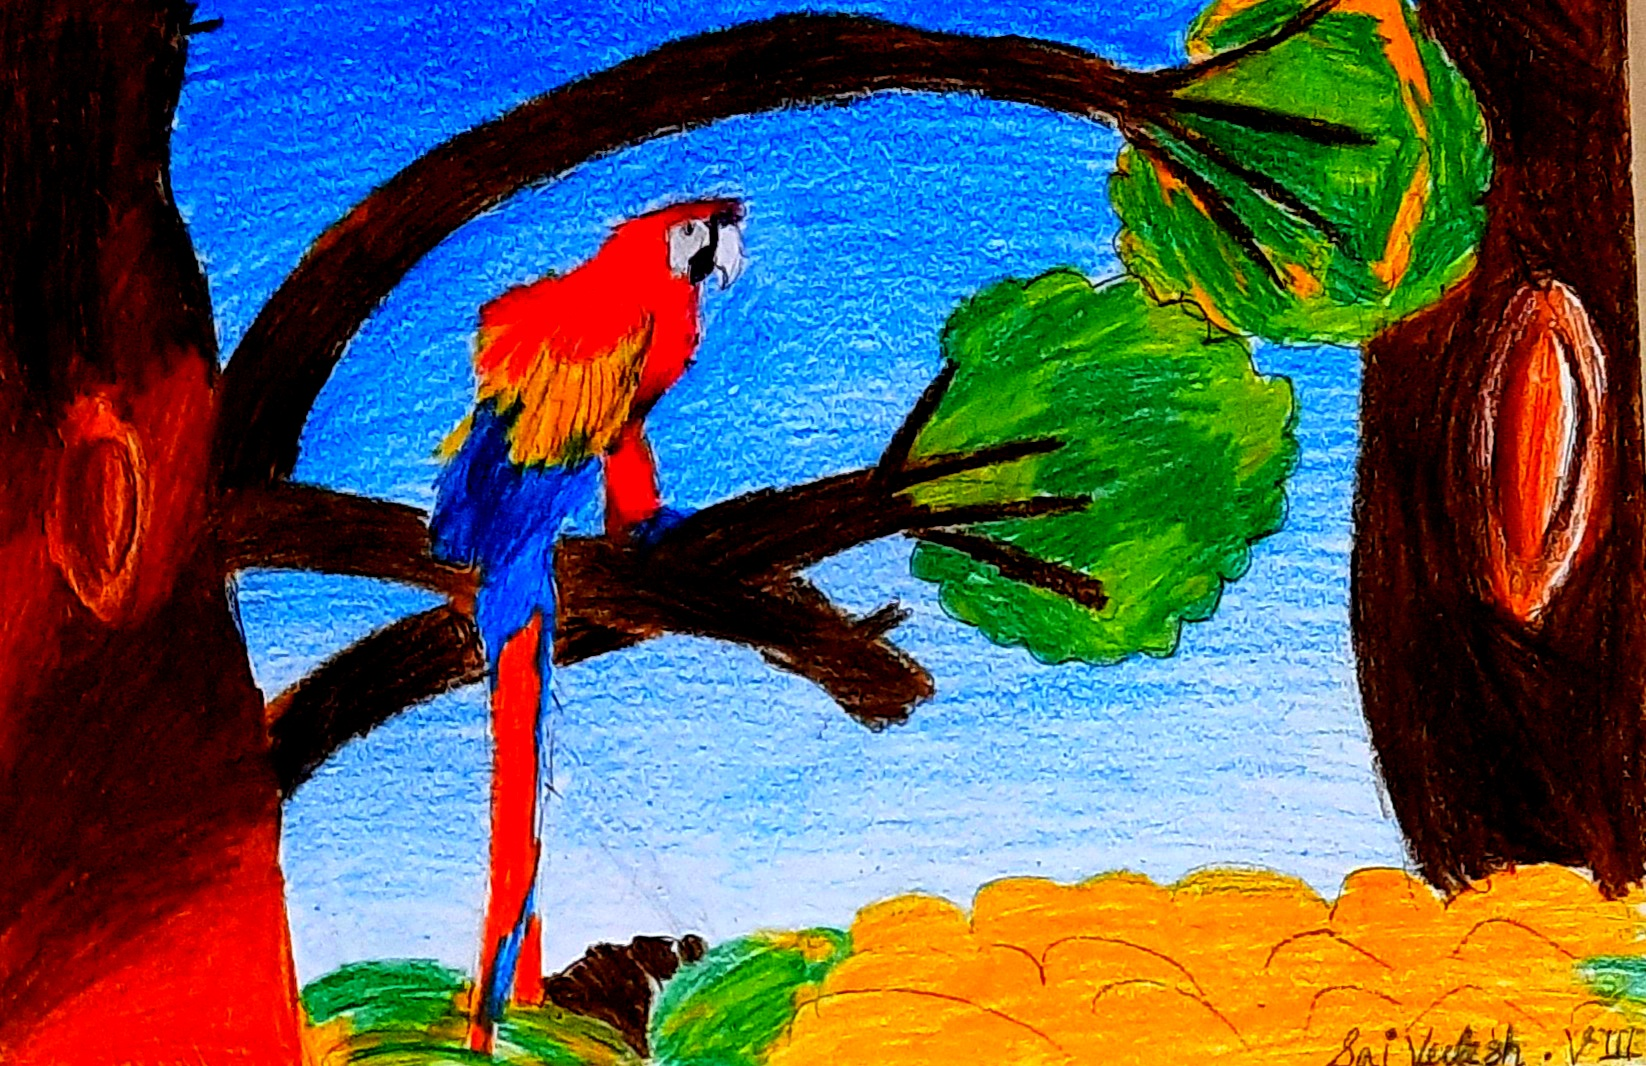 Saivedesh's Drawing Of A Macaw